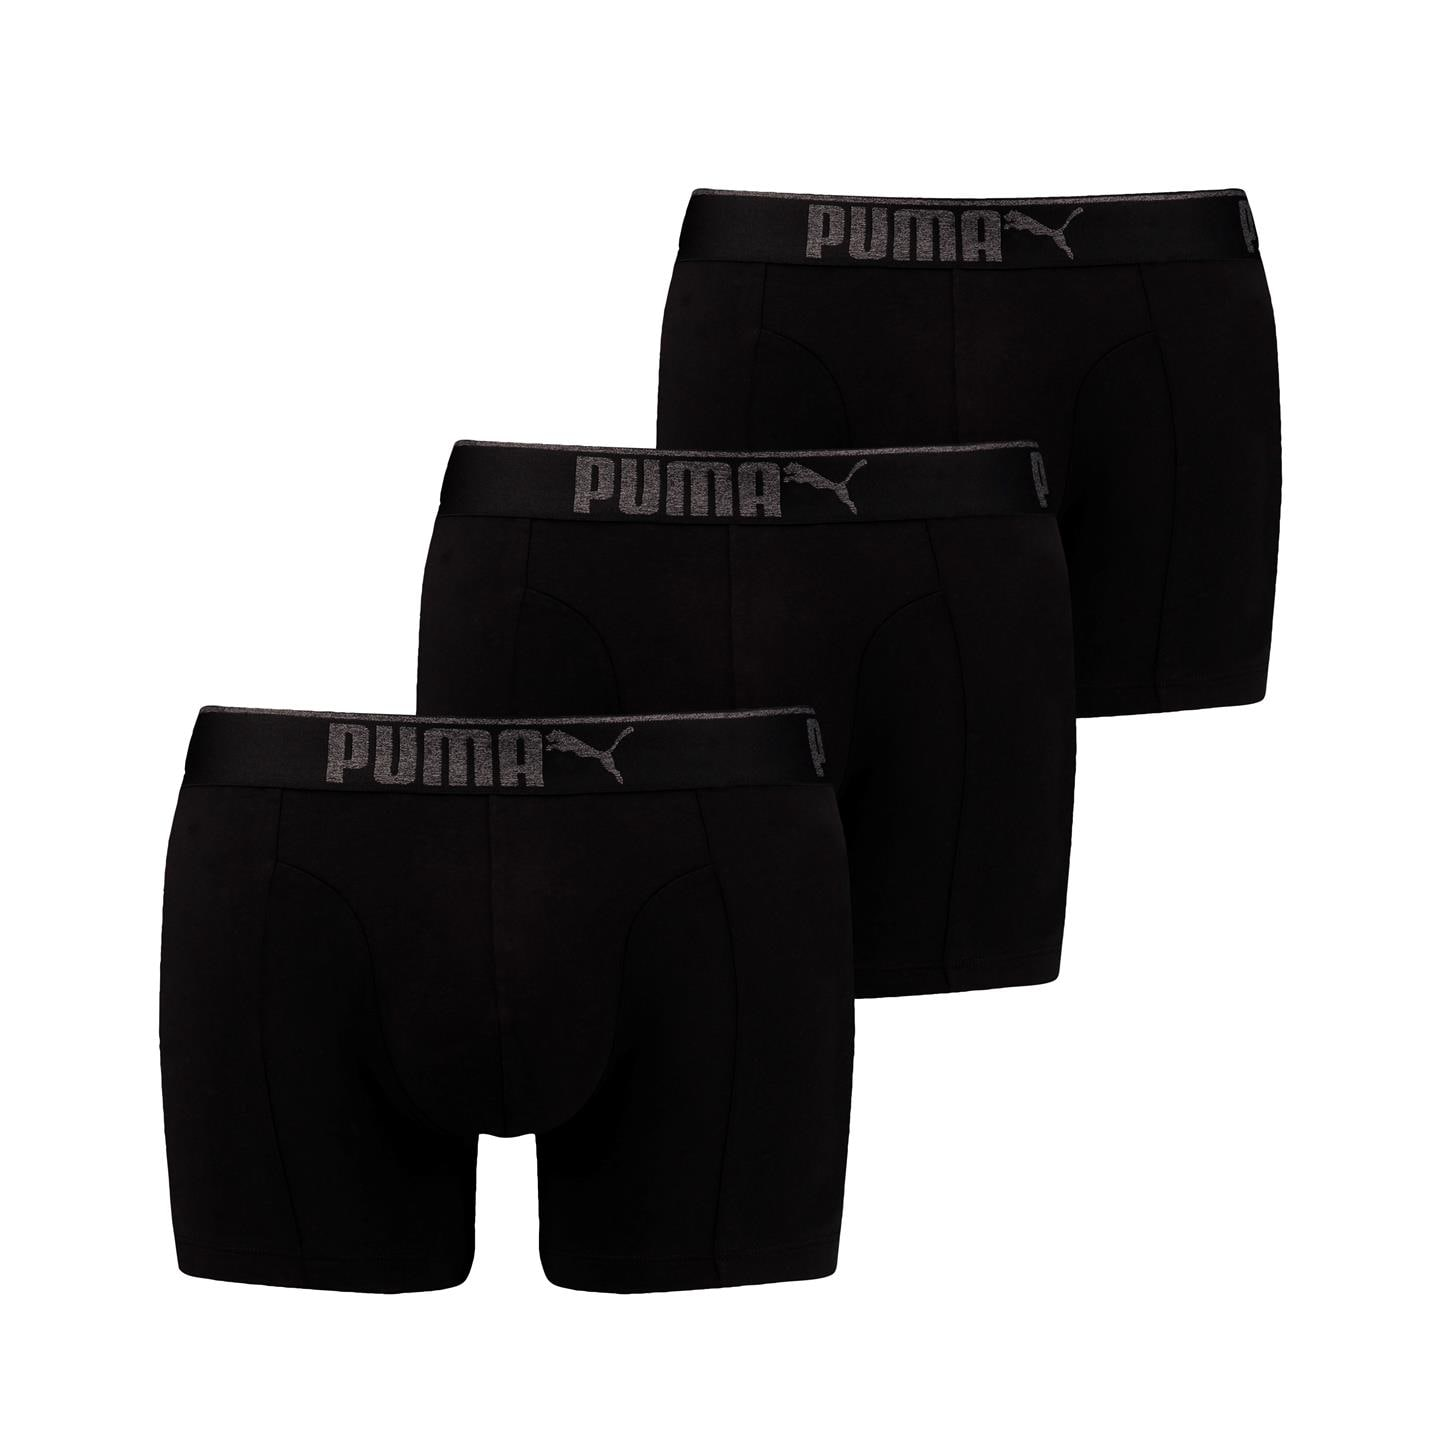 Puma 3pk Sueded Cotton Boxer